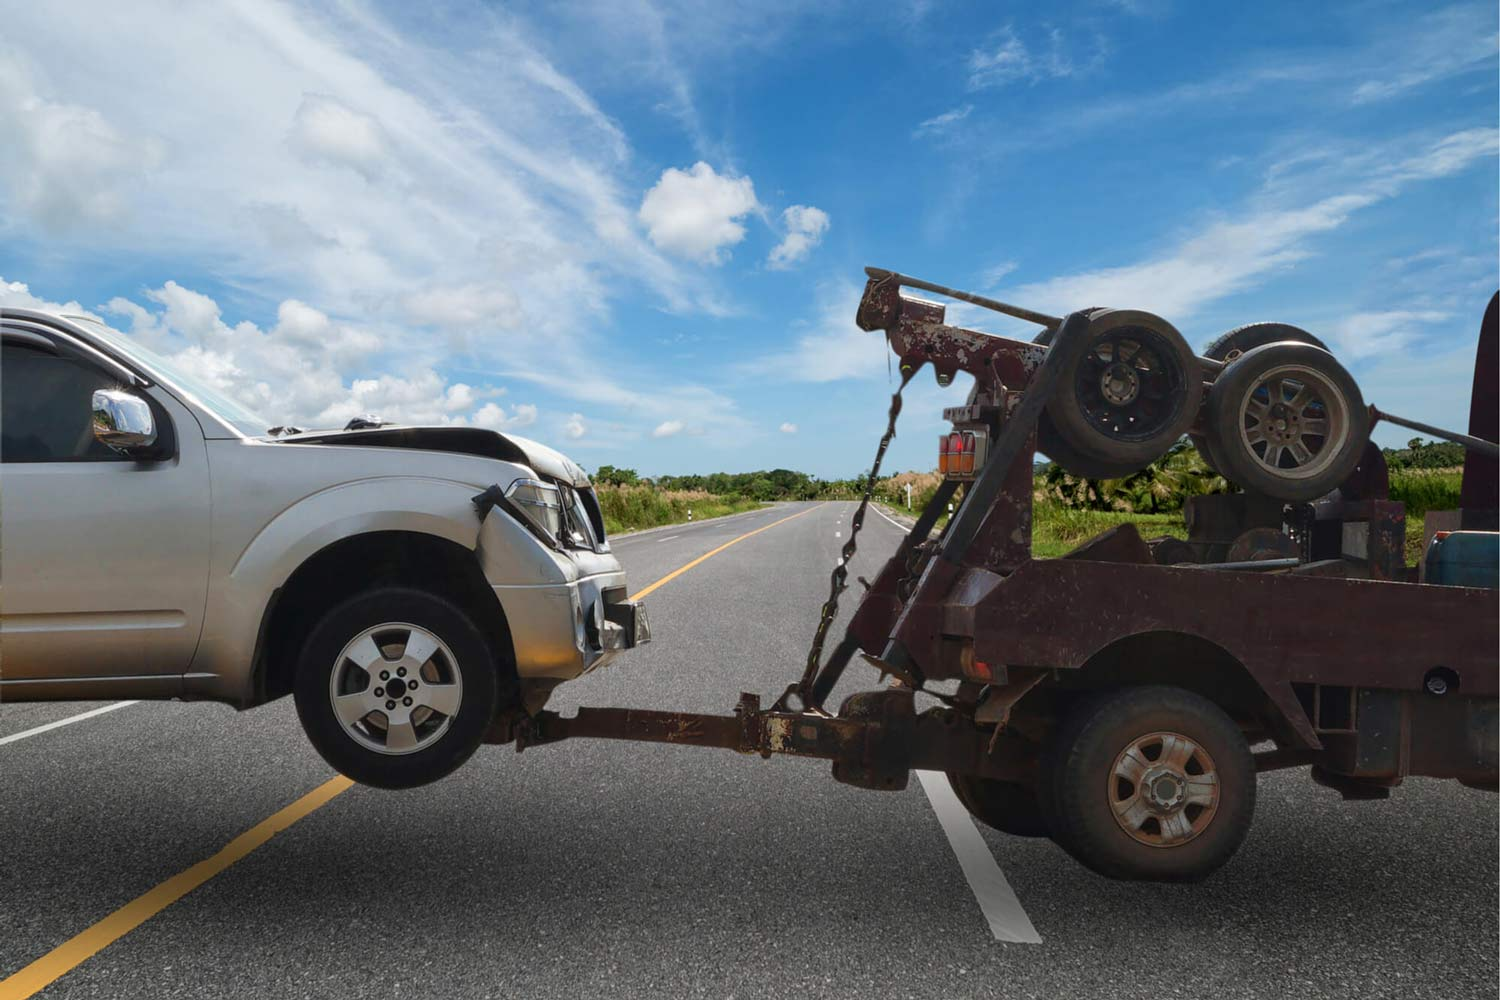 Car damaged in accident by driver without auto insurance represented by Ward & Barnes, P.A., Attorneys at Law